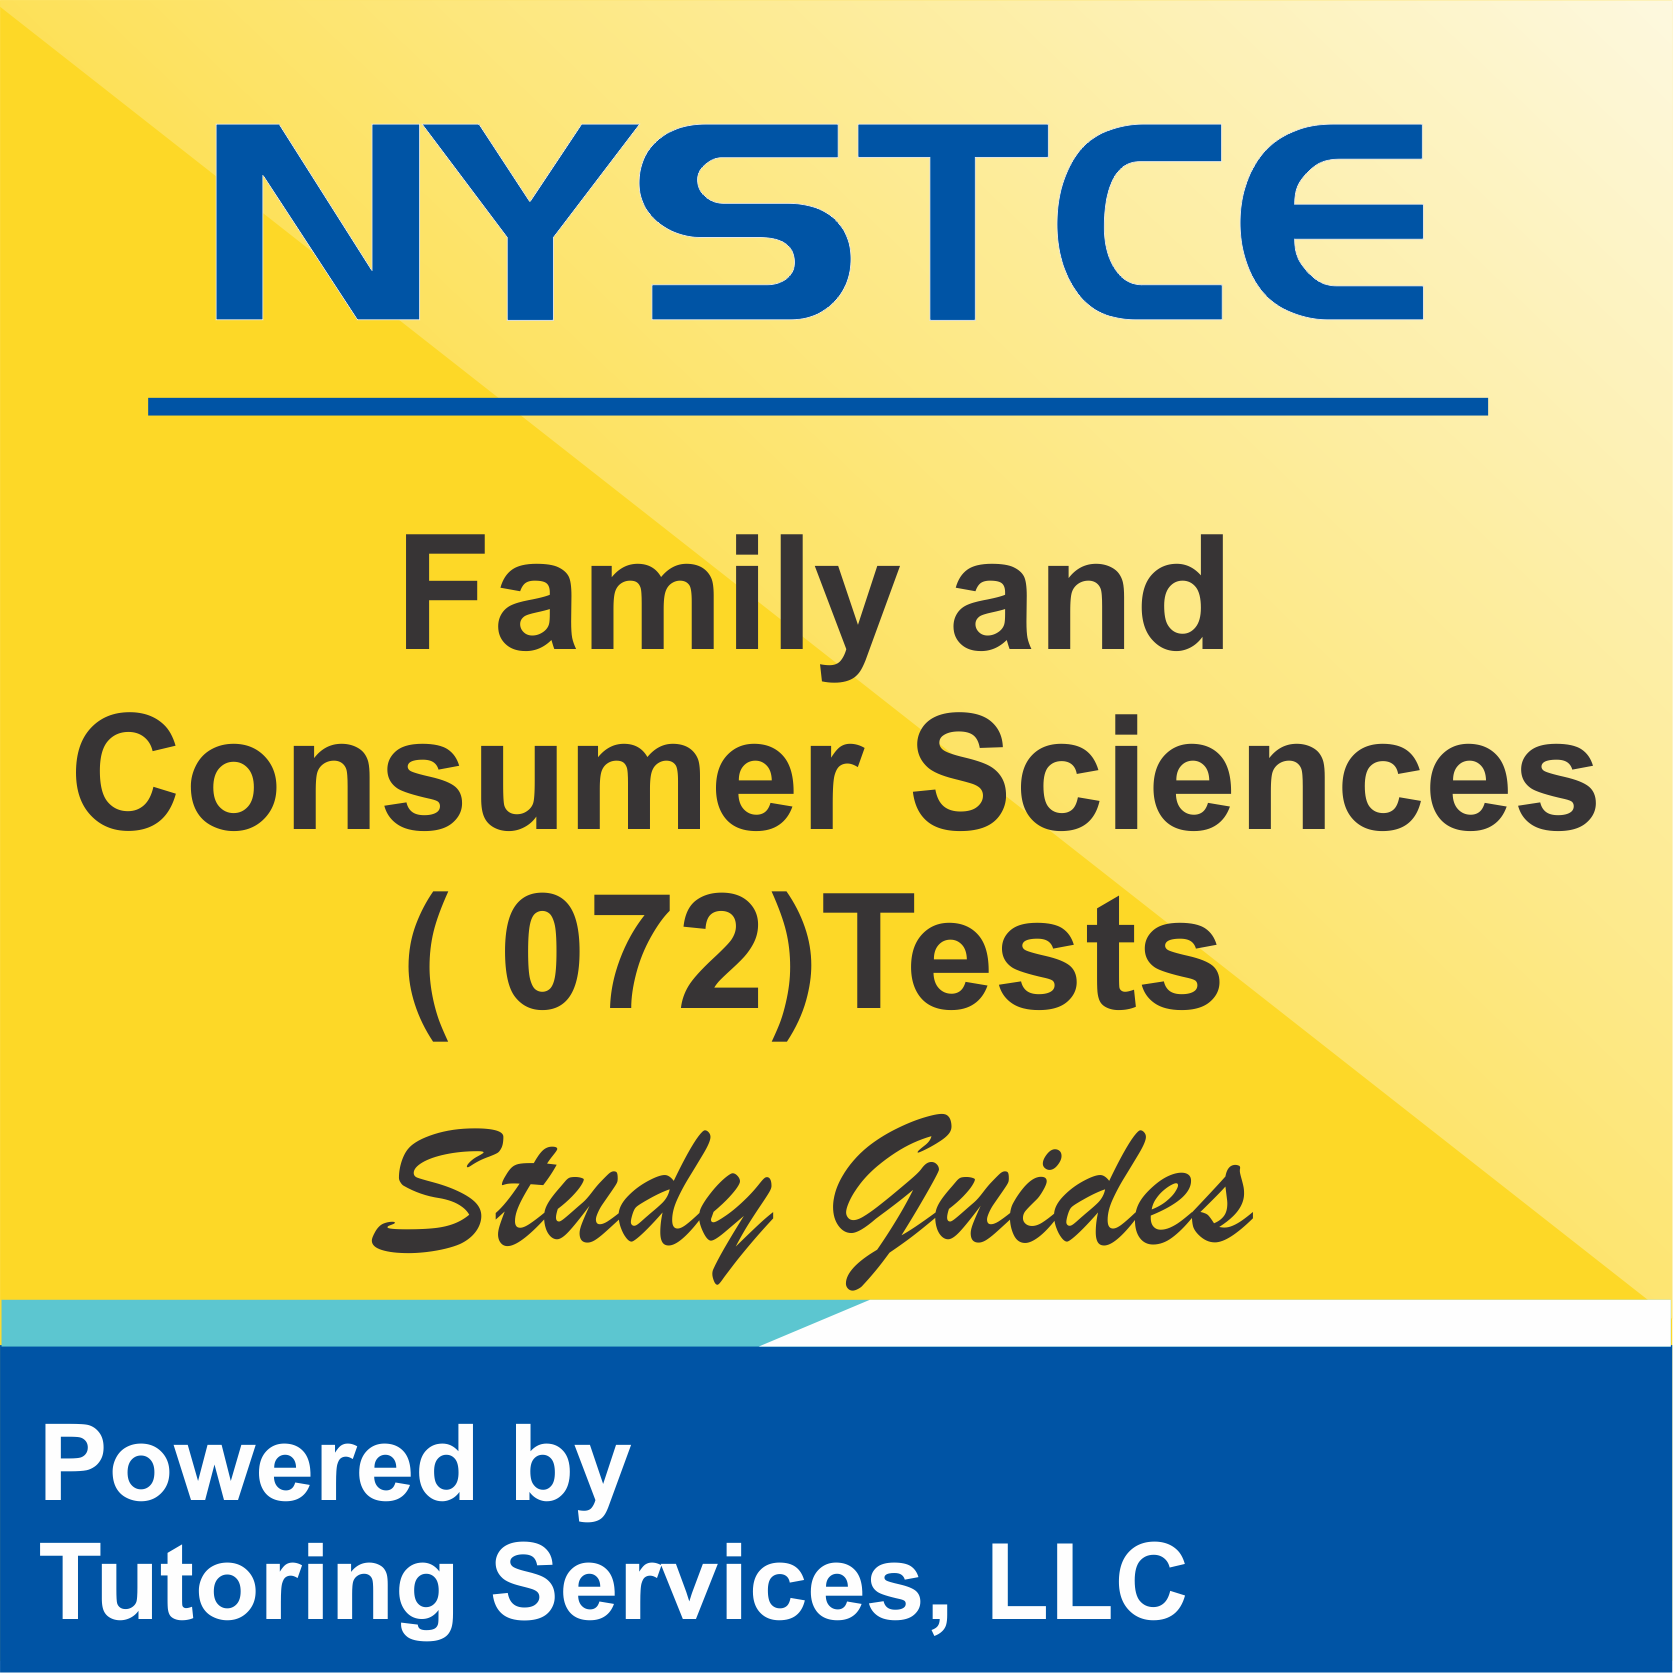 NYSTCE Teacher Certification Test Information for Family and Consumer Sciences 072